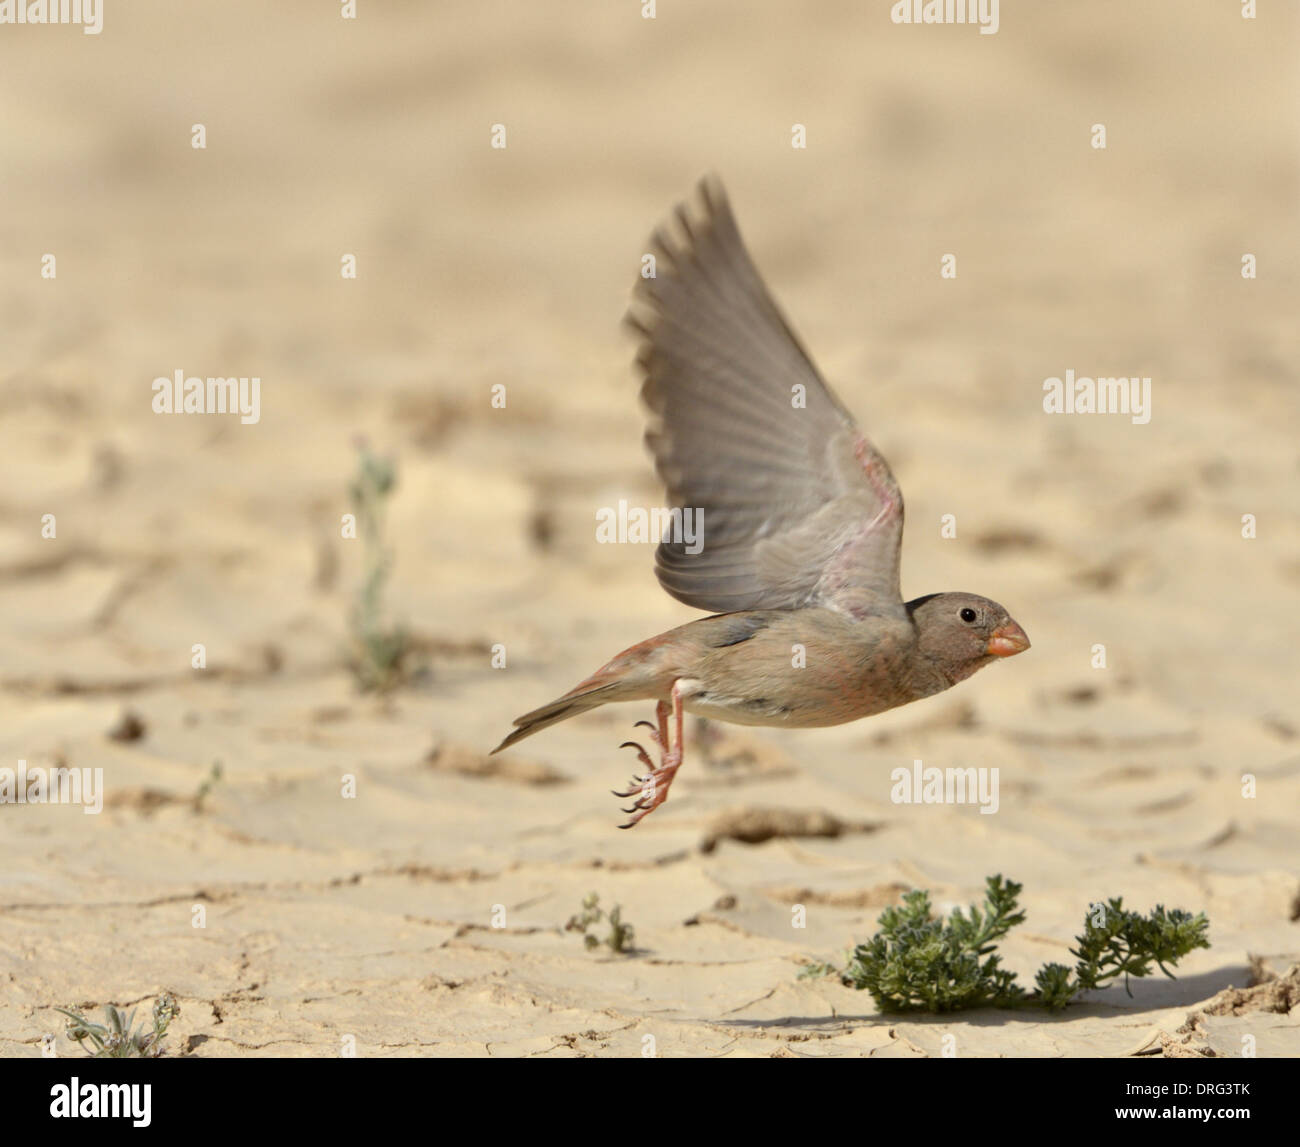 Trumpeter Finch - Bucanates githagineus - Stock Image